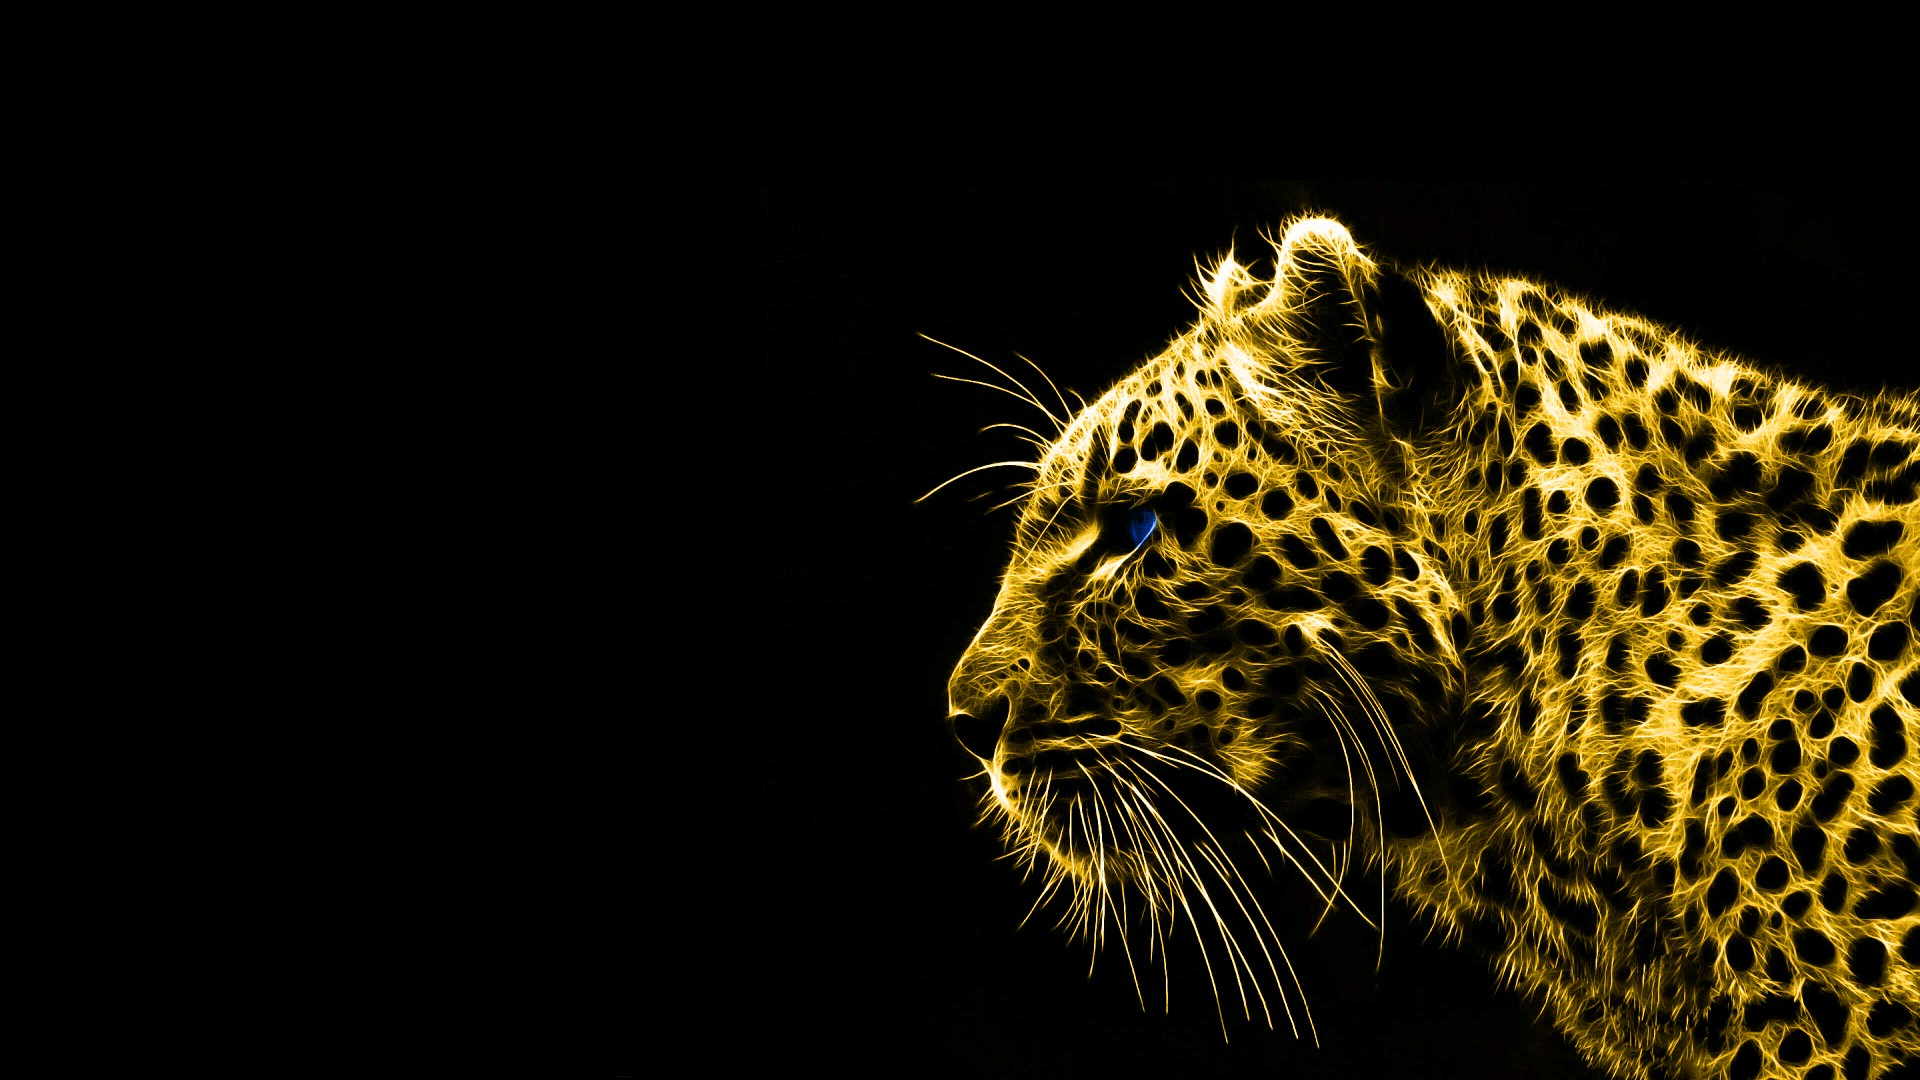 gold and black background ·① download free hd wallpapers for